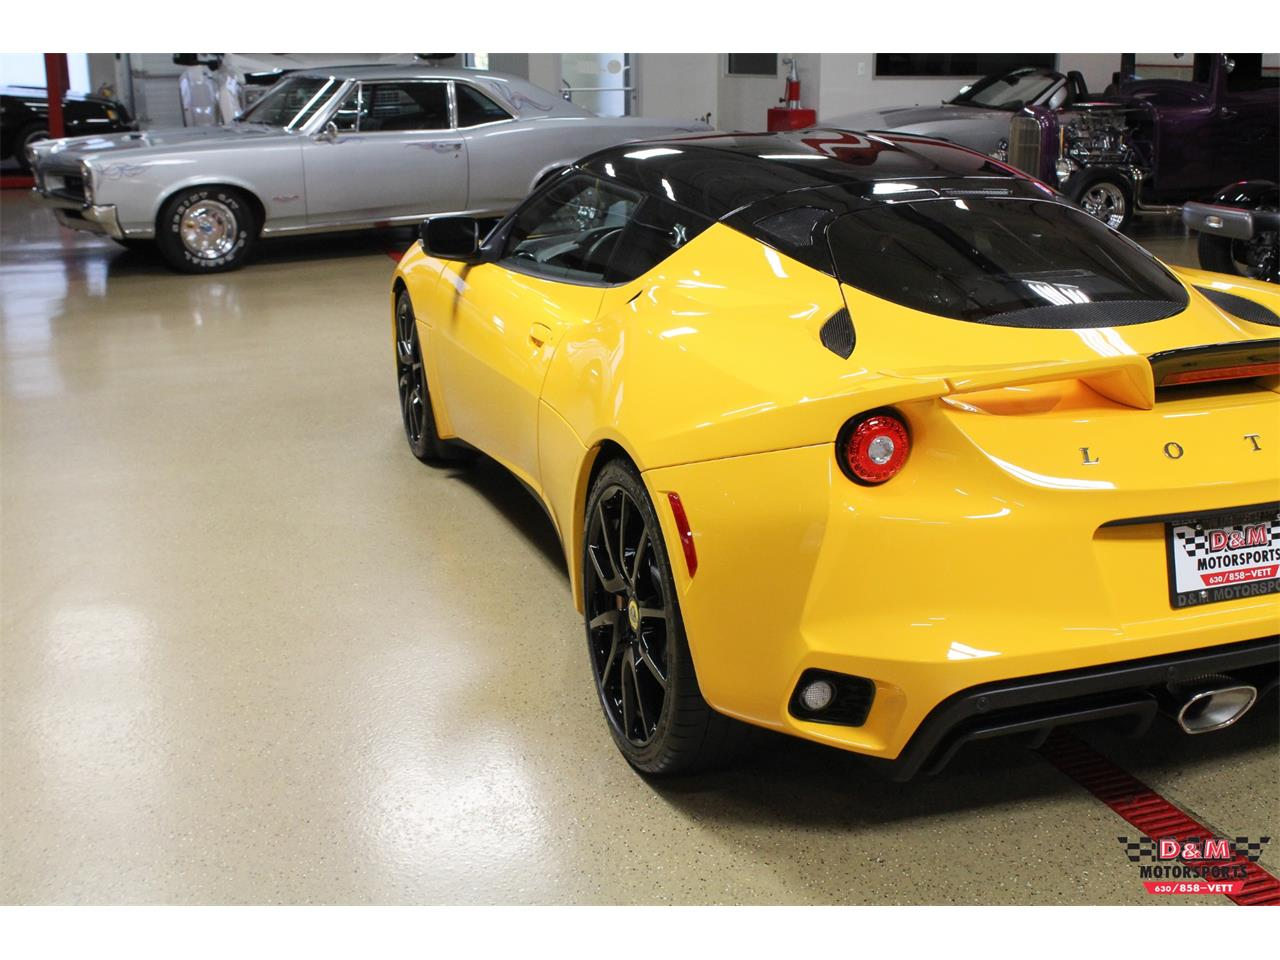 Large Picture of 2017 Lotus Evora located in Glen Ellyn Illinois Offered by D & M Motorsports - OY1K